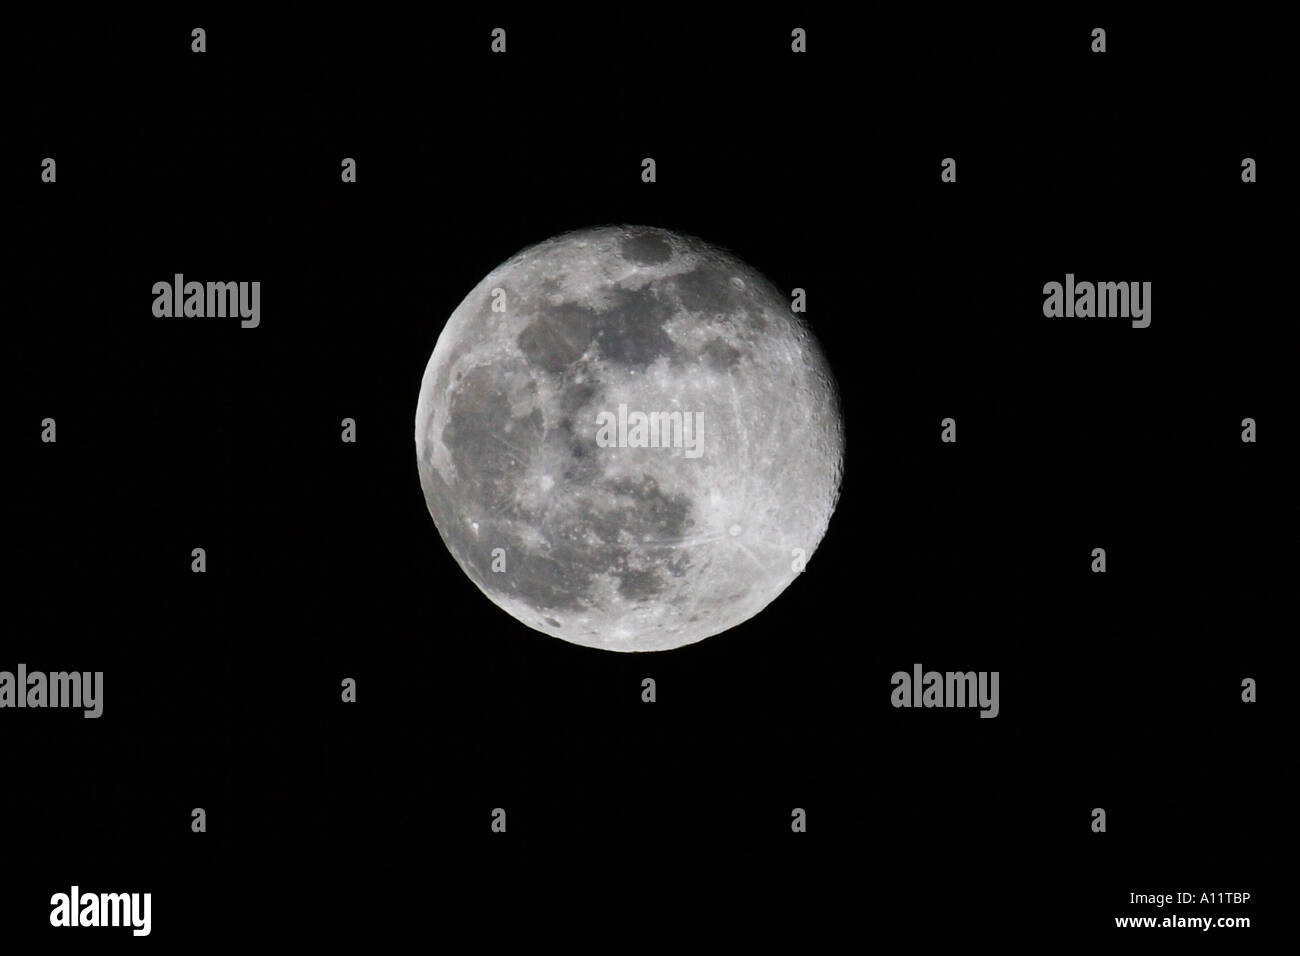 Moon, Mond - Stock Image